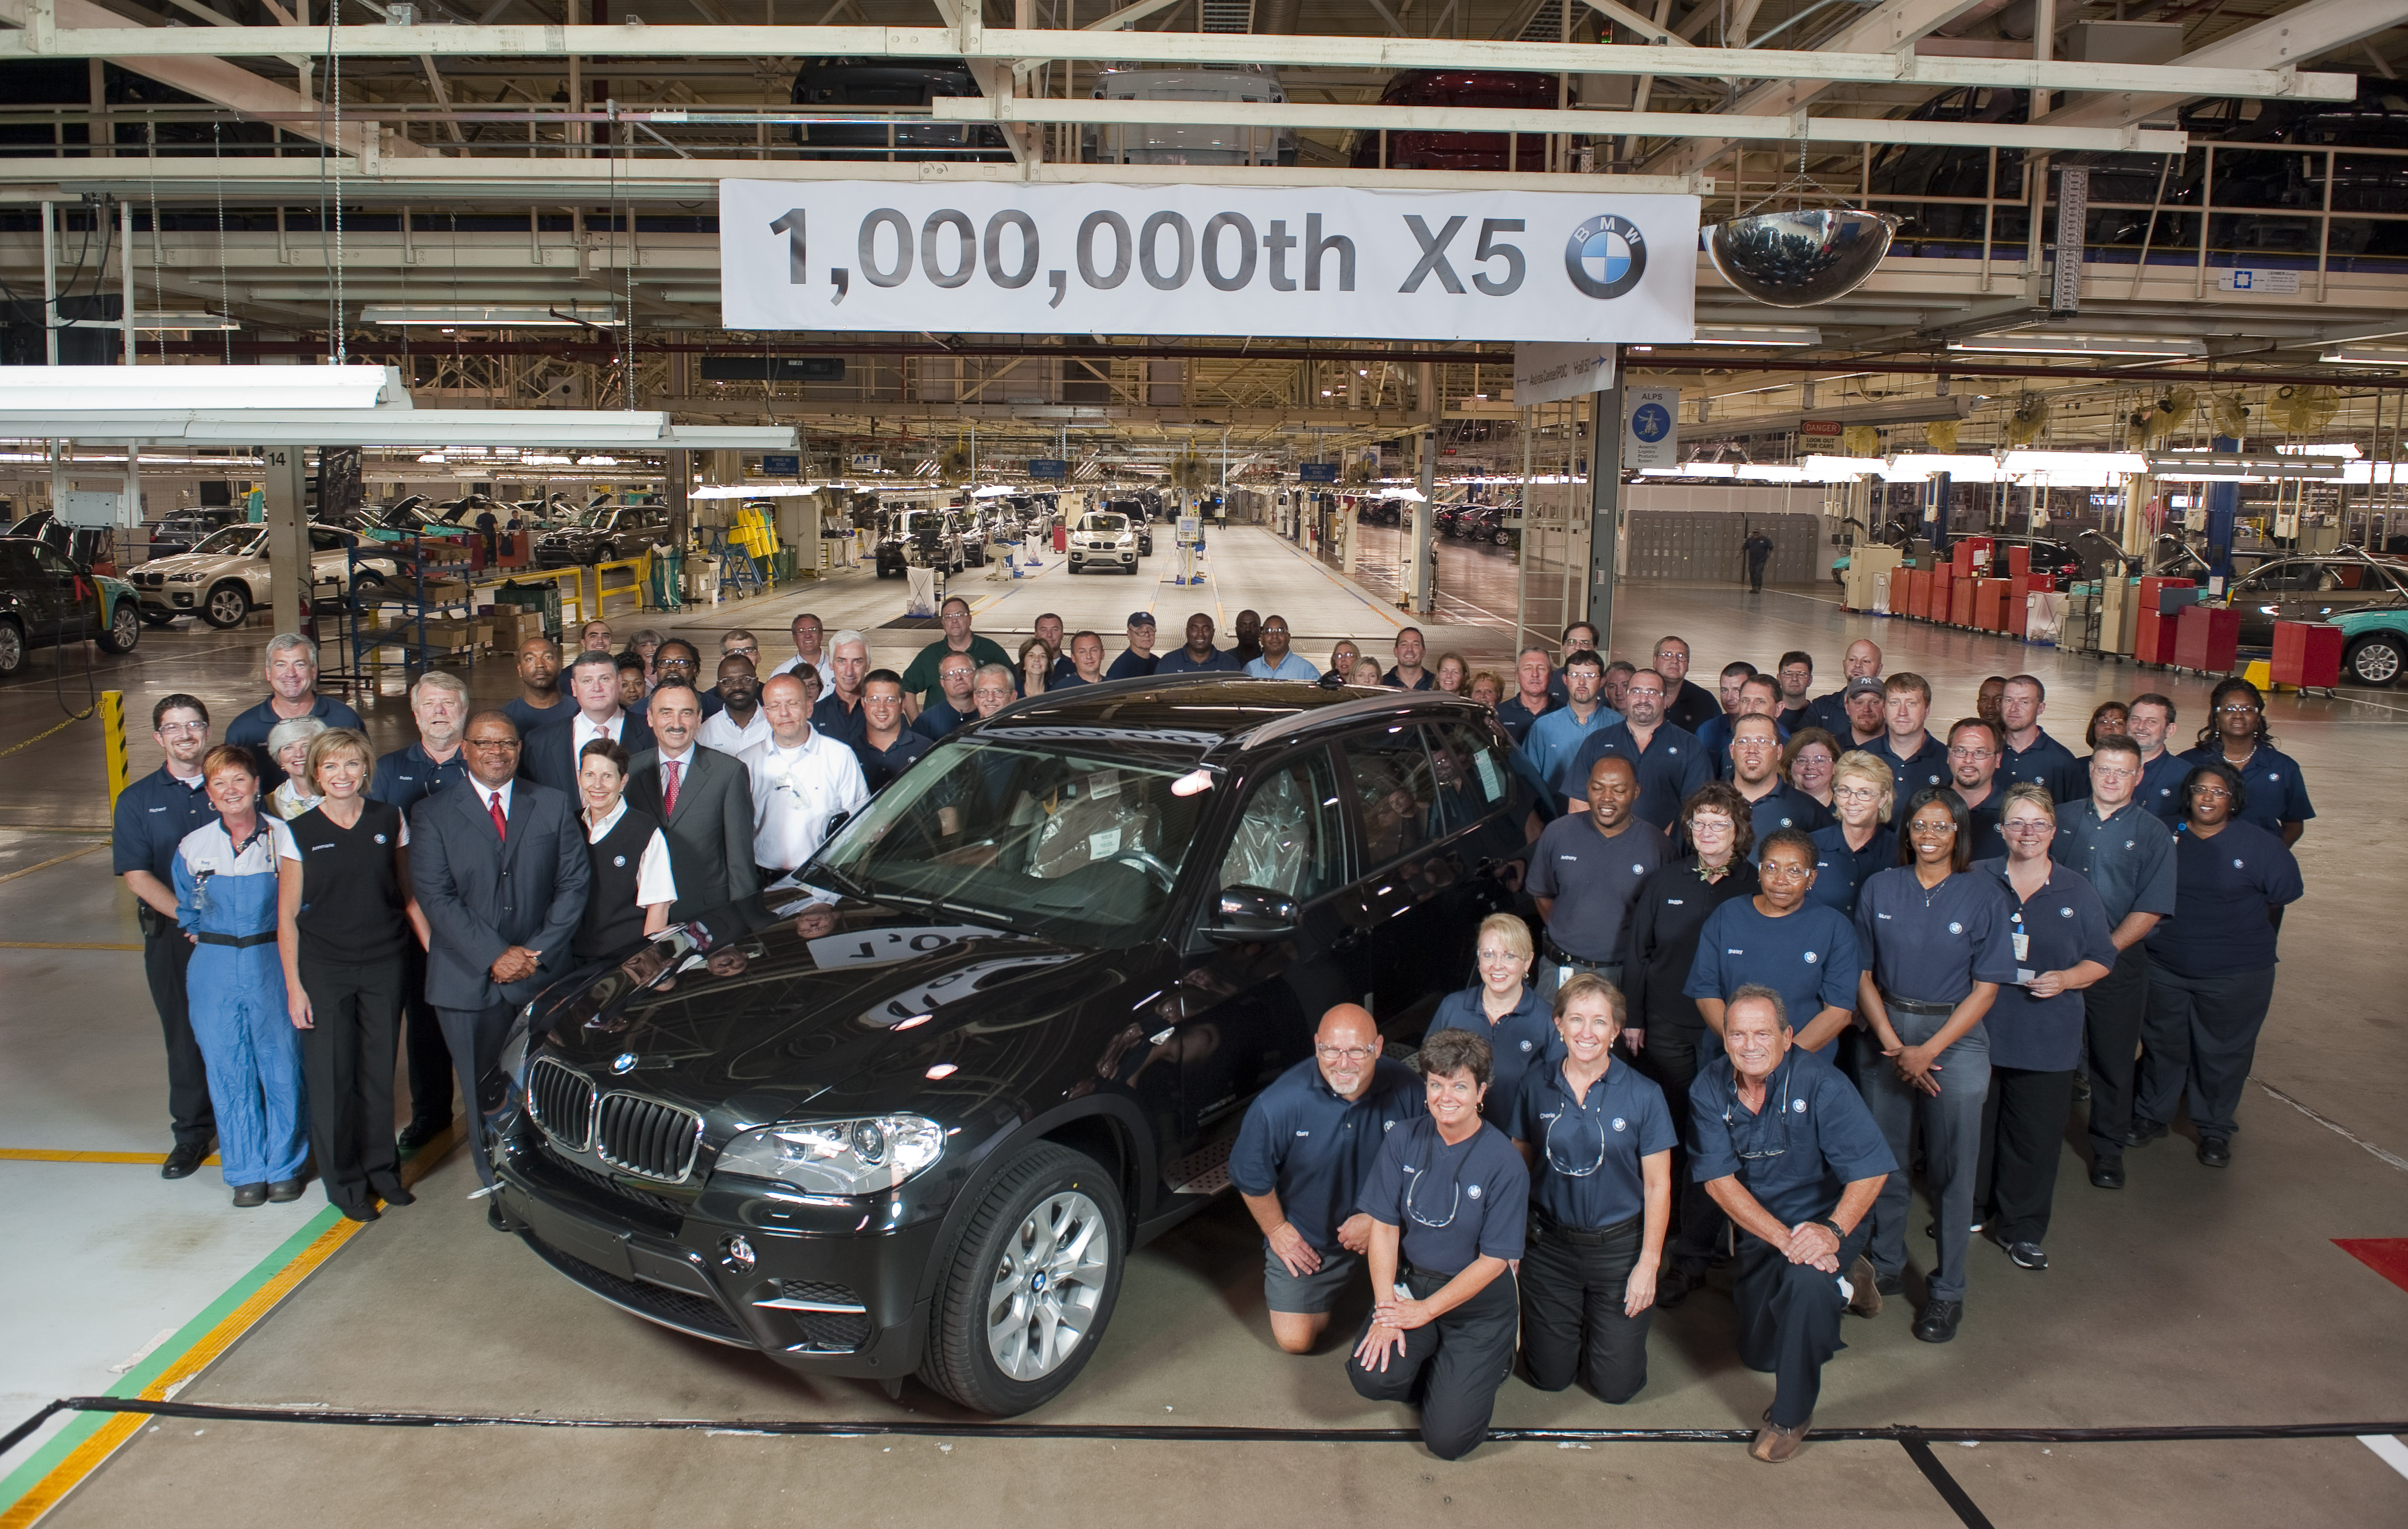 BMW Associates gather around the 1 millionth BMW X5. The vehicle rolled off the Assembly Line at BMW's Spartanburg Factory on June 8, 2010. (06/2010)